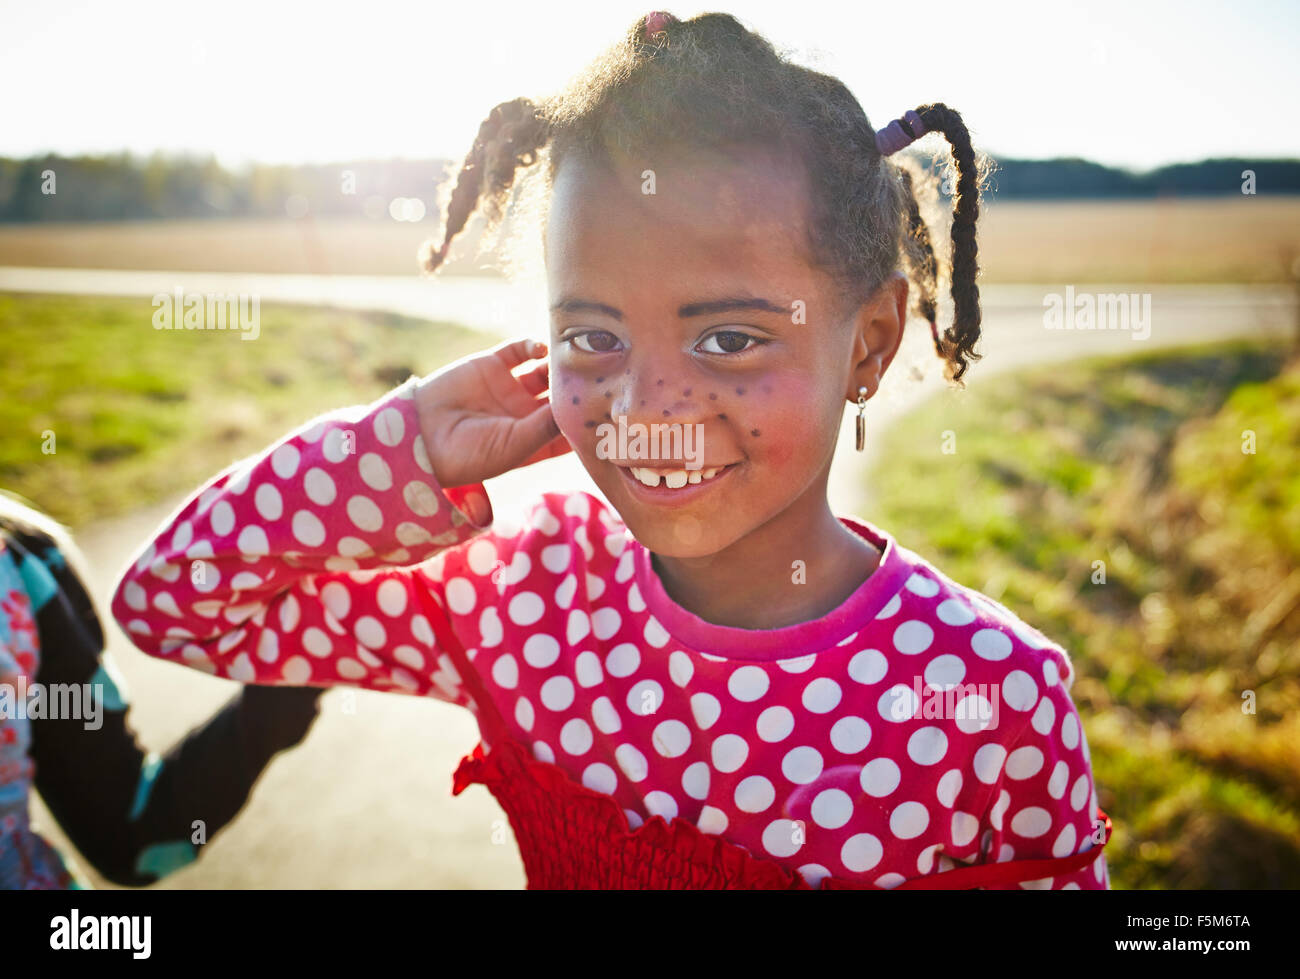 Sweden, Vastra Gotaland, Gullspang, Runnas, Girl (6-7) with painted freckles - Stock Image